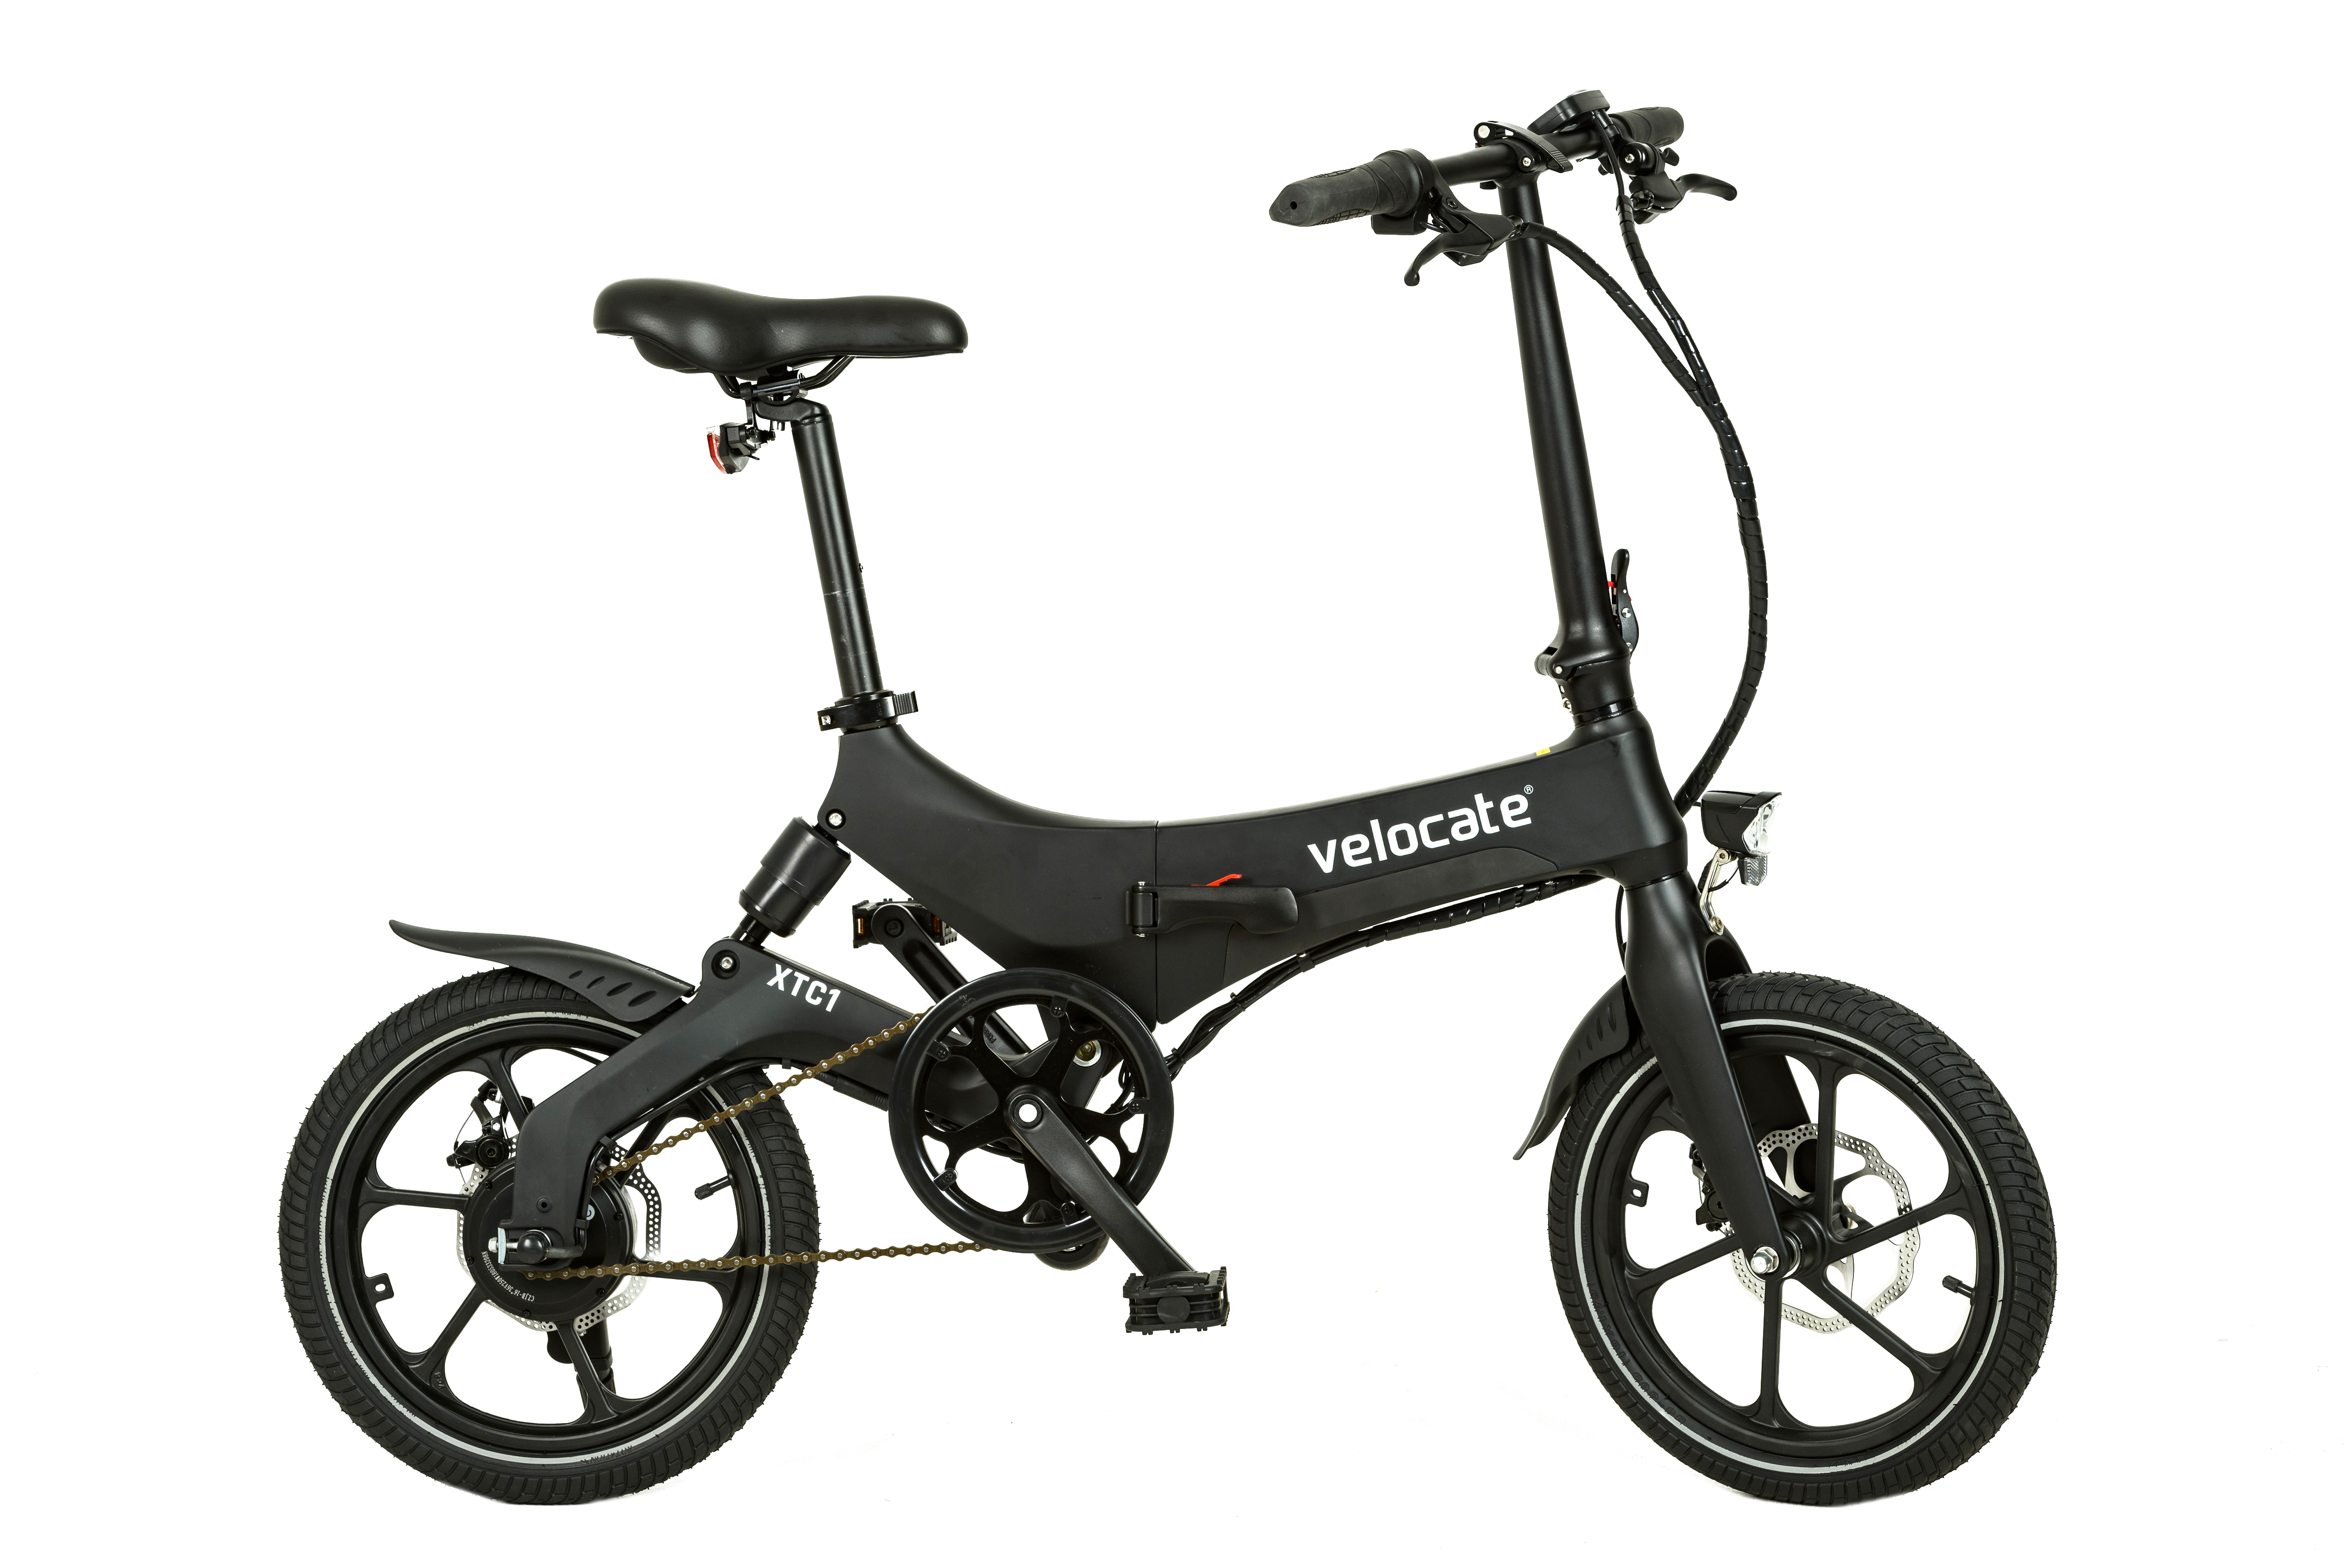 sorglos paket 2 jahre service f r e bike velocate xtc1 e mobilit t xtasy sports. Black Bedroom Furniture Sets. Home Design Ideas